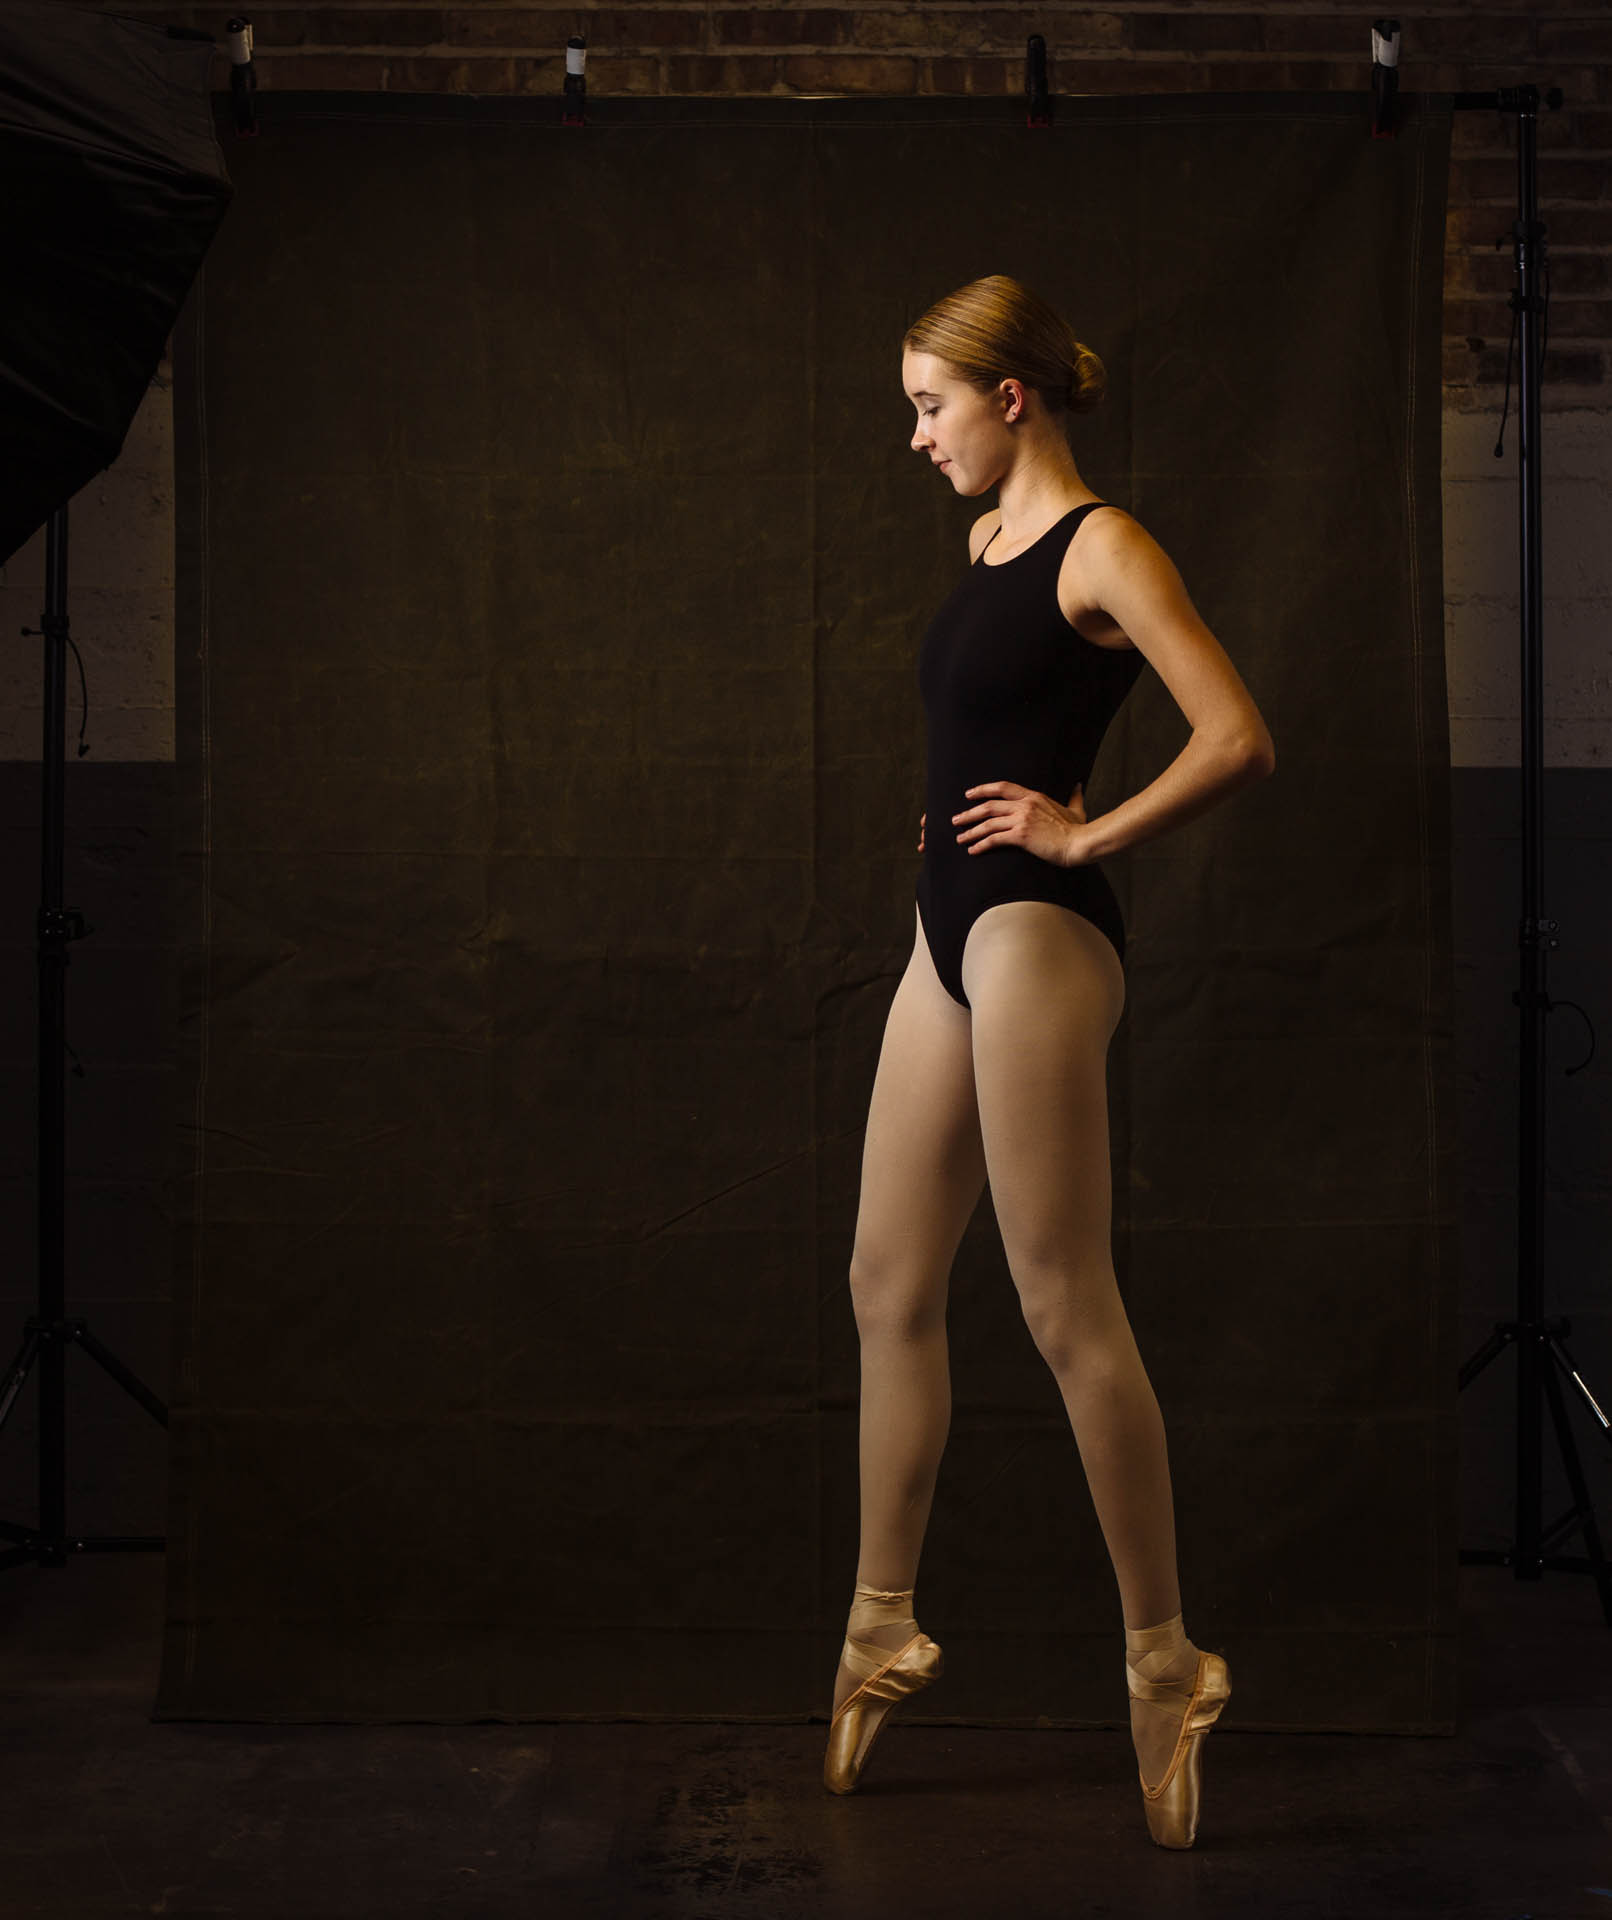 hannah-ballerina-on-pointe-bts-studio